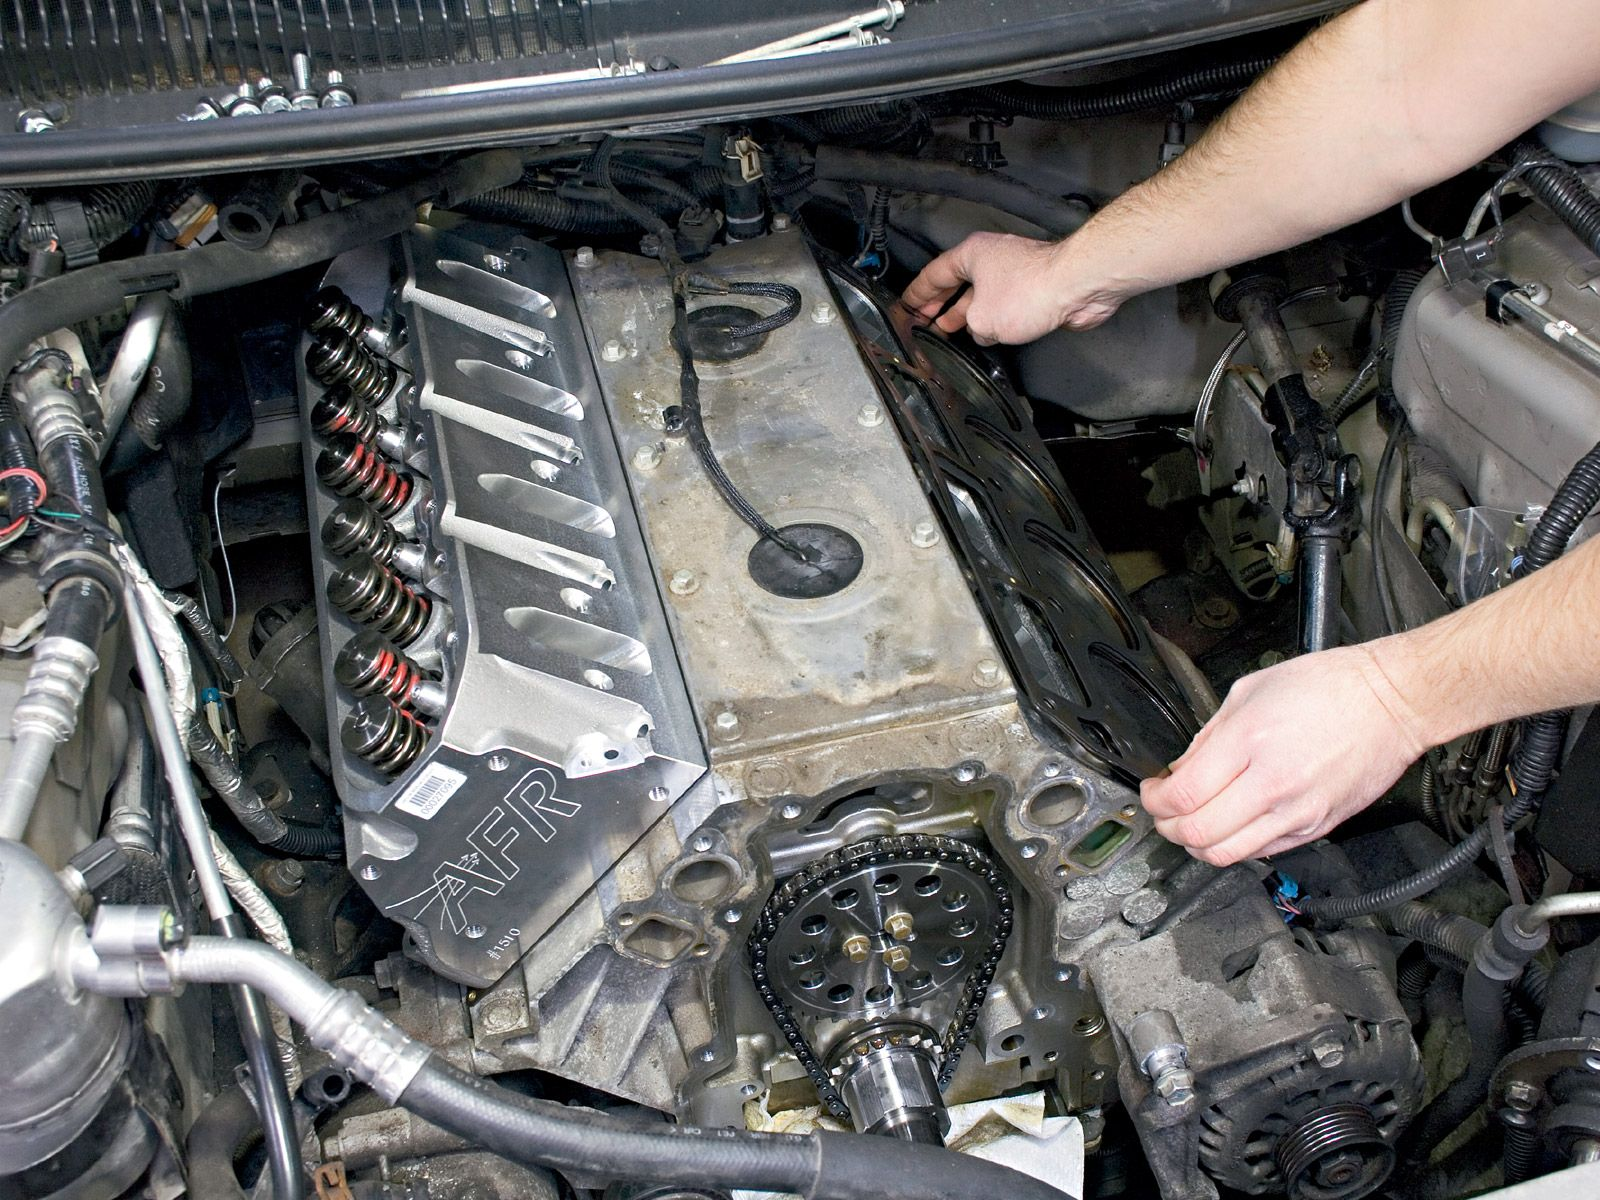 Pin By George Davis On Head Gasket Pinterest Auto Service Car Ls1 Engine Fuse Box Location Iskandar Garage Services Radiator Repairs Amp Cooling System Pressure Tests New Replacement